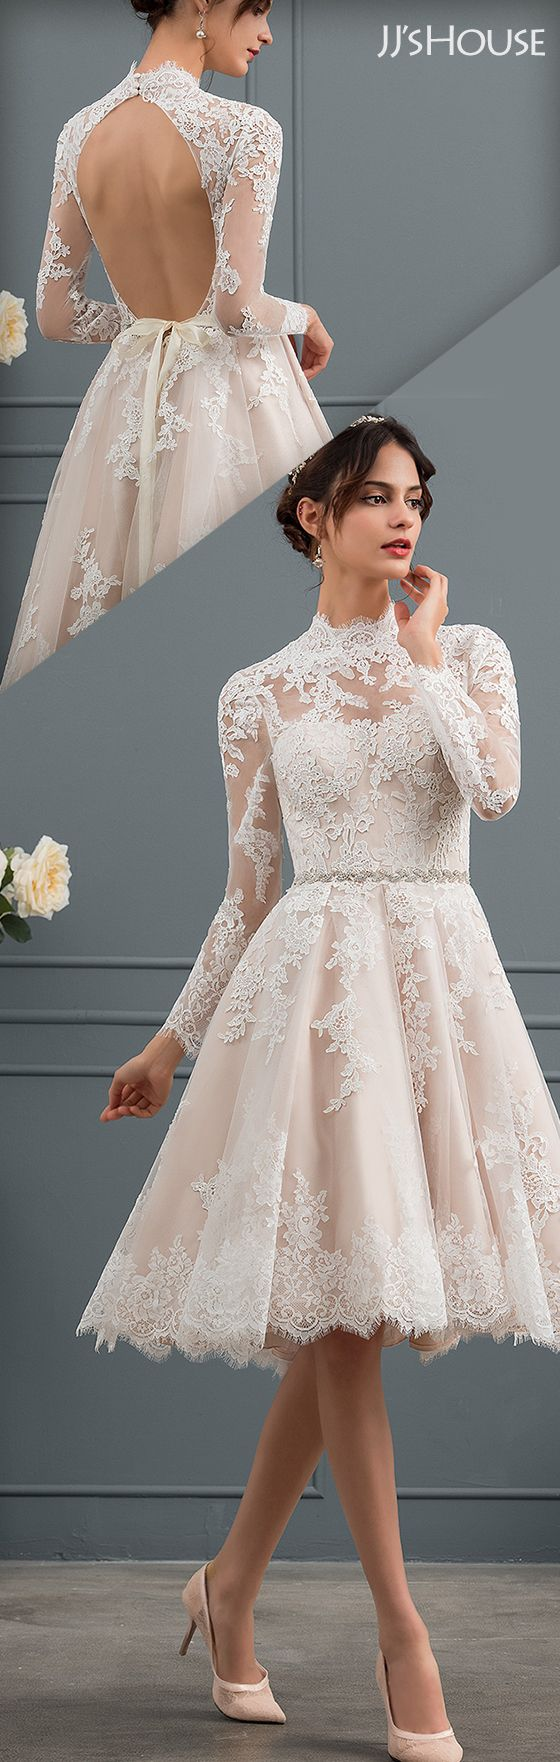 Crafted From Airy Tulle And Delicate Lace This Knee Length